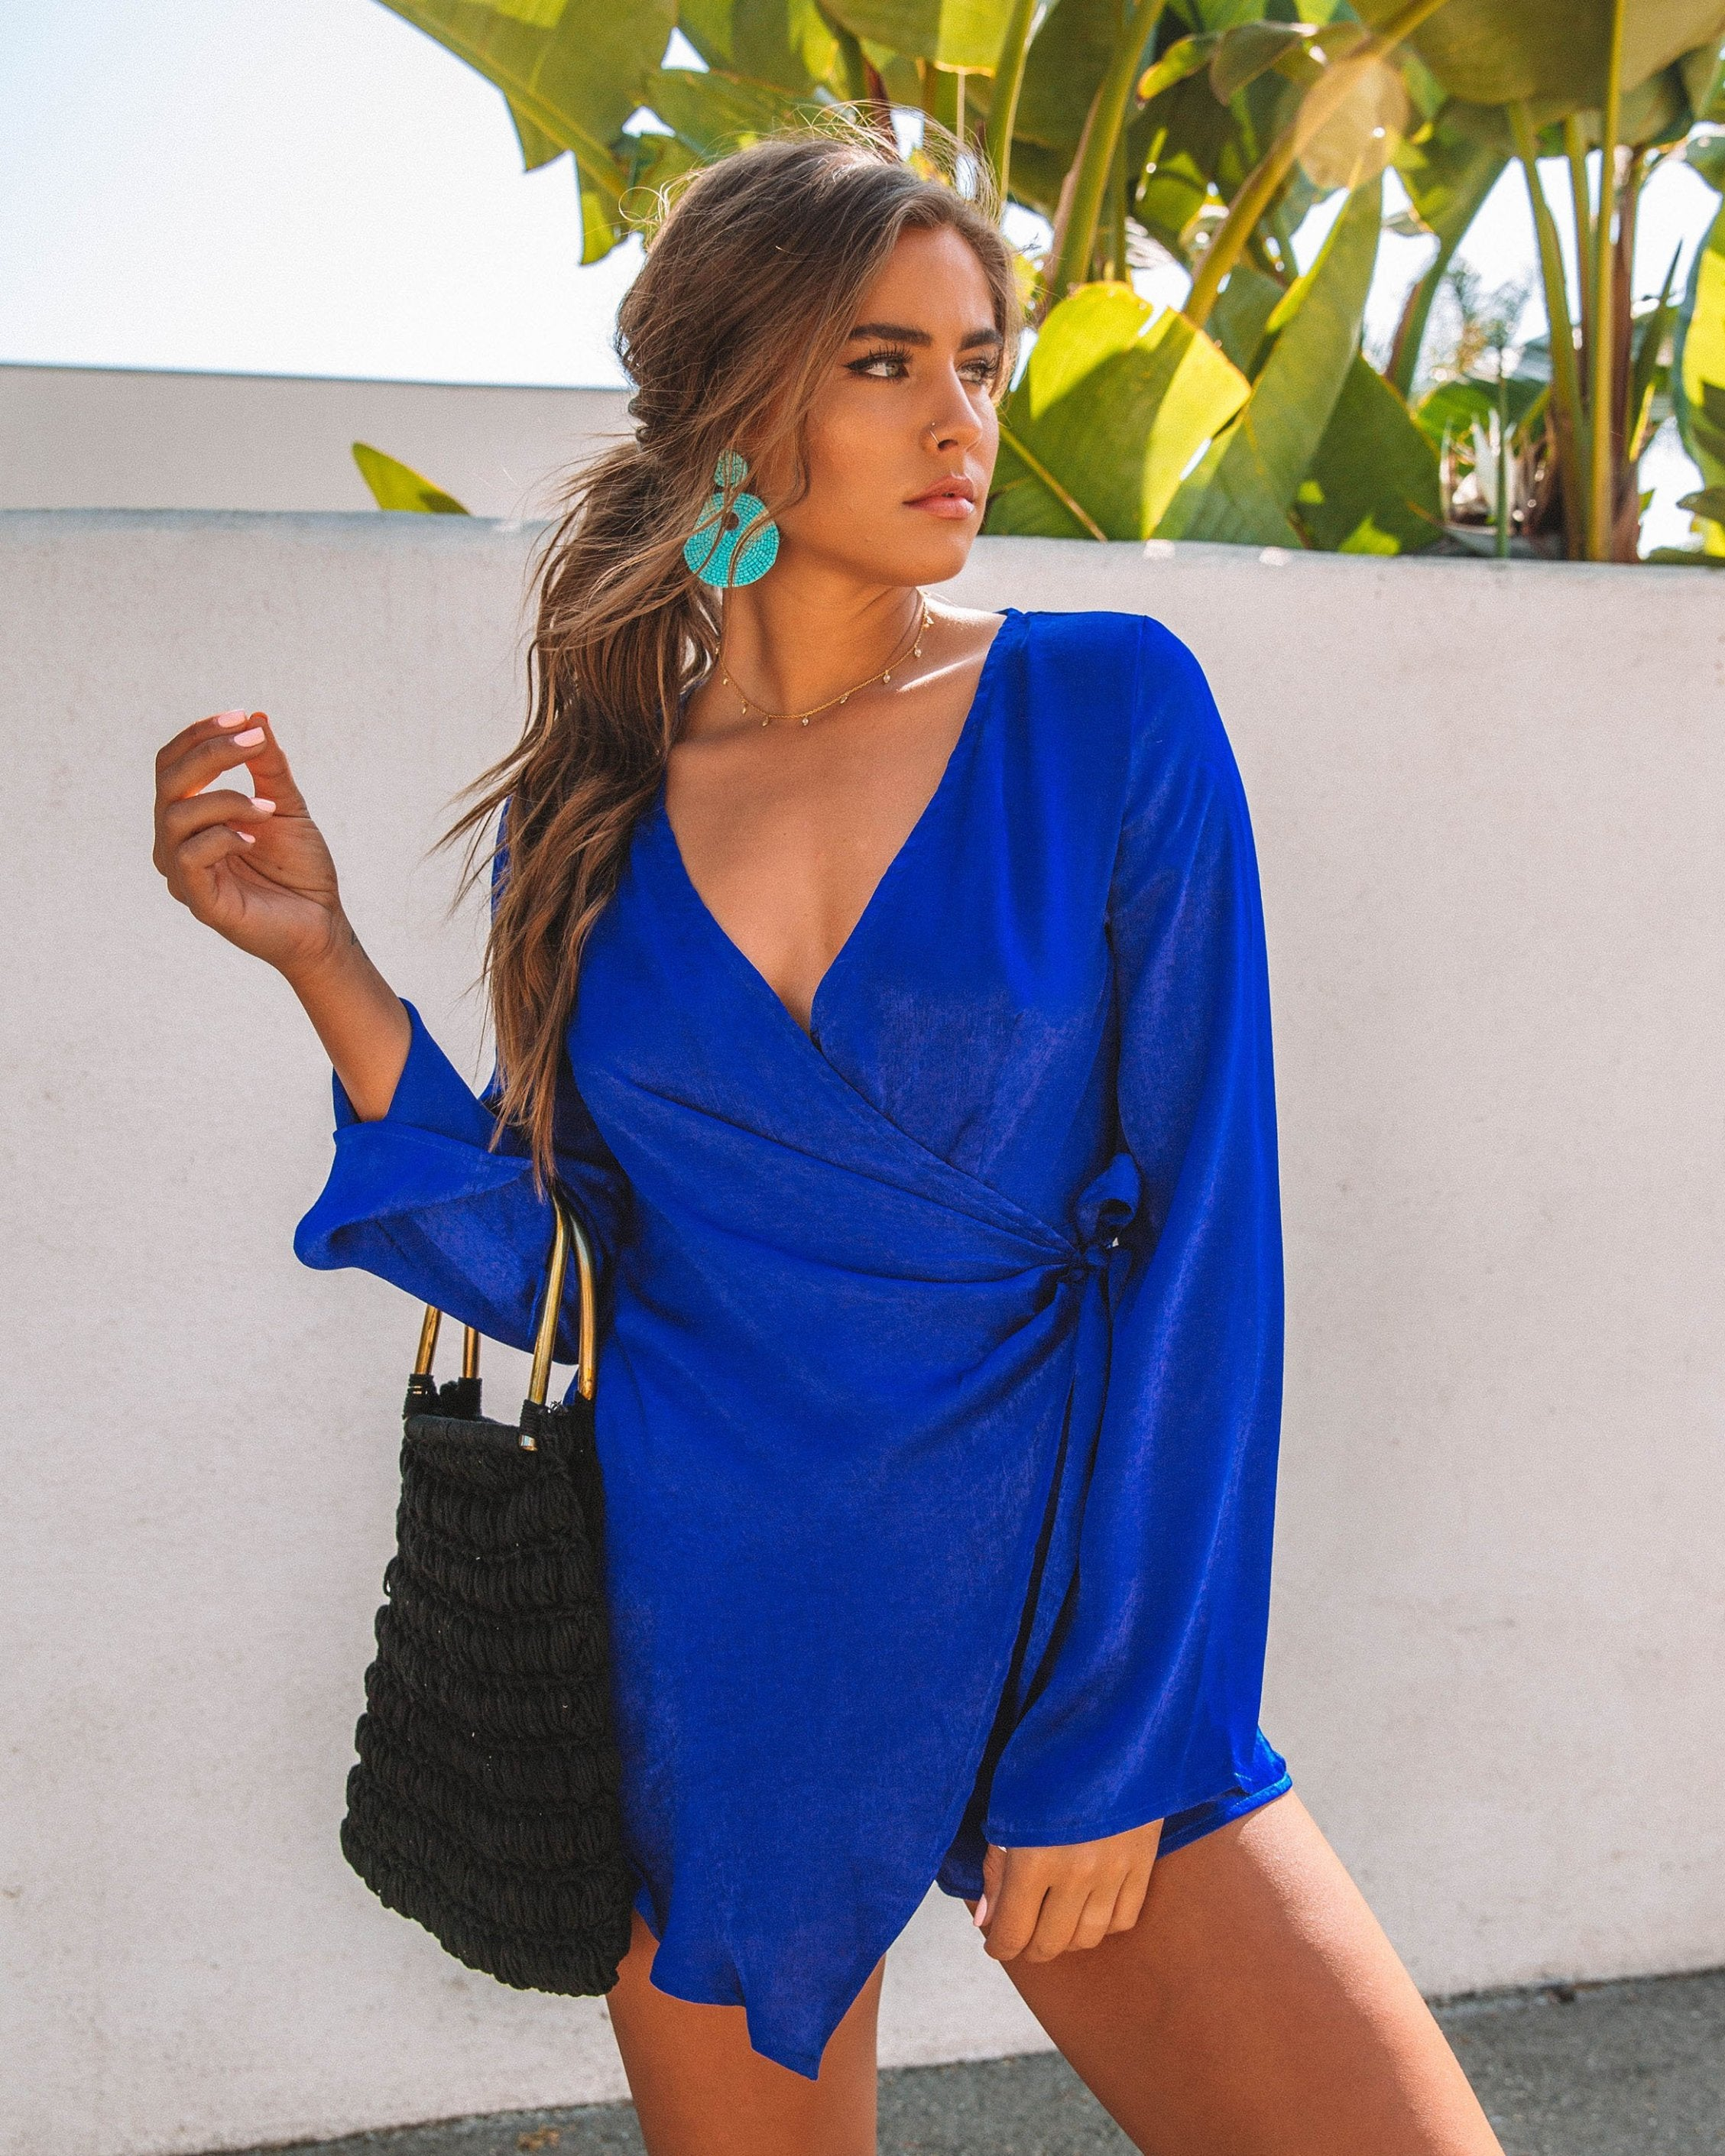 c9a36cd86ea3 Detail Product. ← Home - ROMPERS - Polished Wrap Romper - Royal Blue